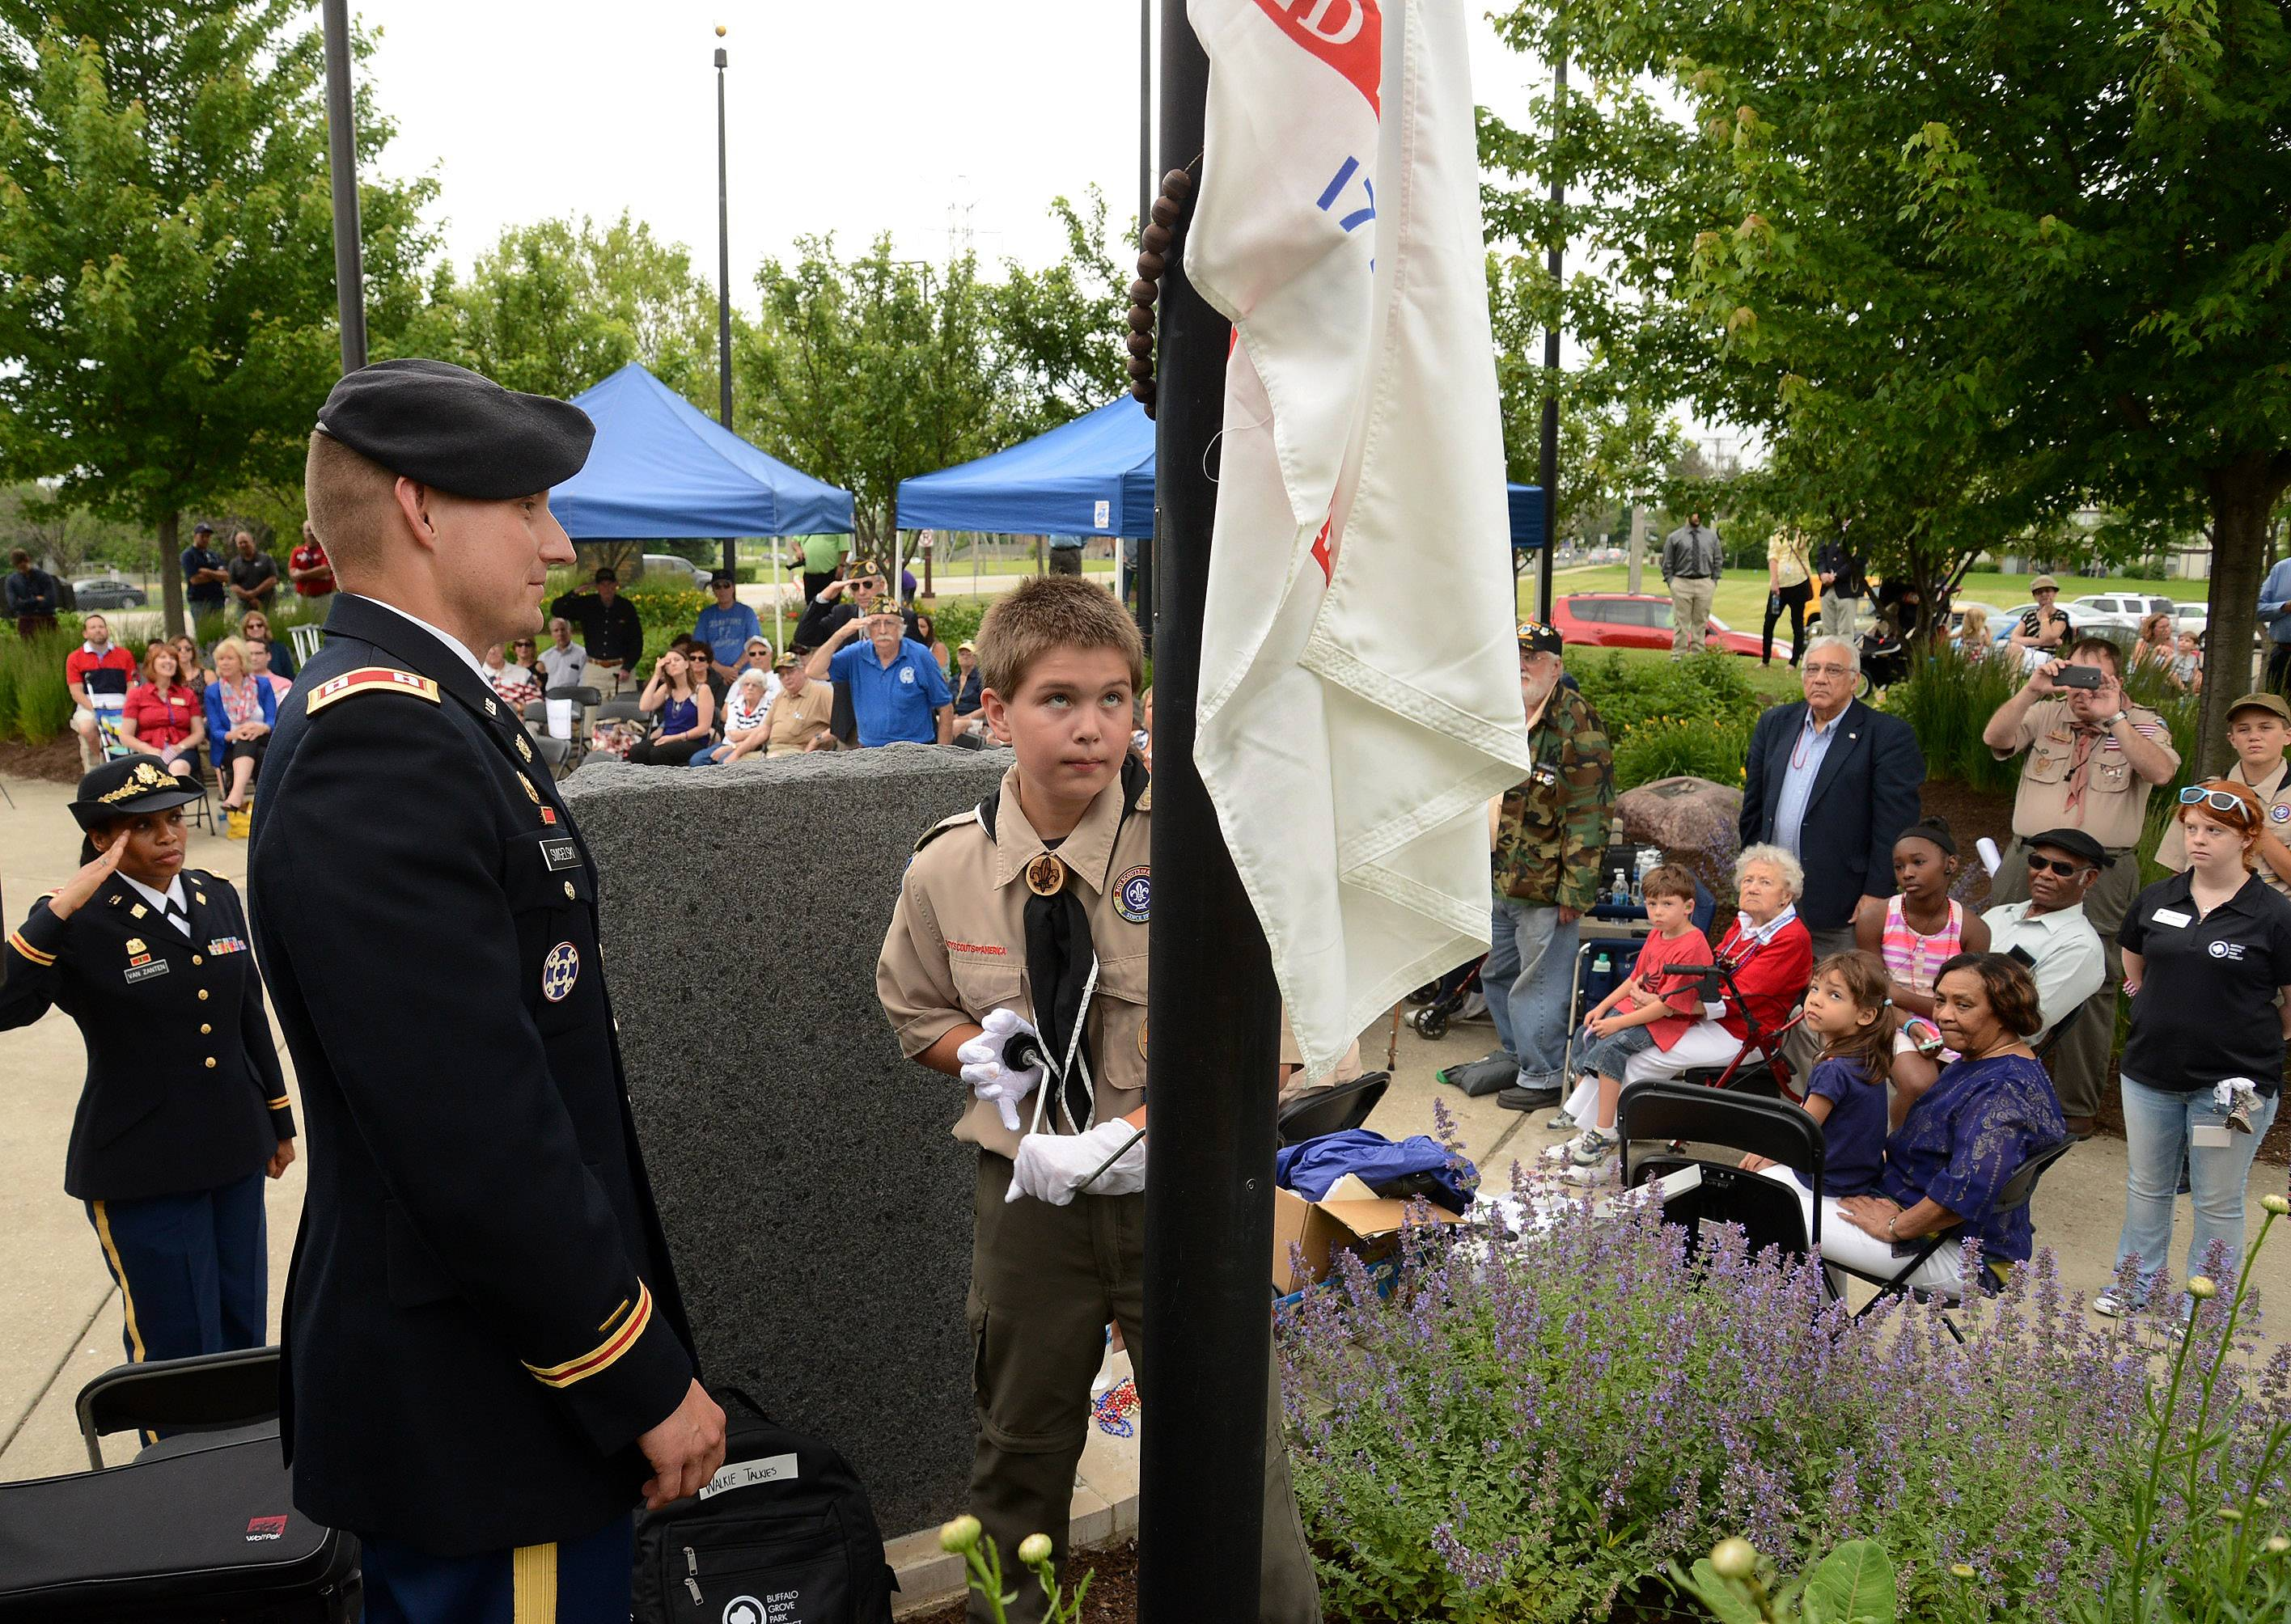 Reservist Jason Smigelski of the 85th States Army Reserve Support Command in Arlington Heights and Boy Scout Jacob Hammon of Troop 79 raise the flag of the Army during the Buffalo Grove Park District's annual Flag Day celebration at Veterans Park.